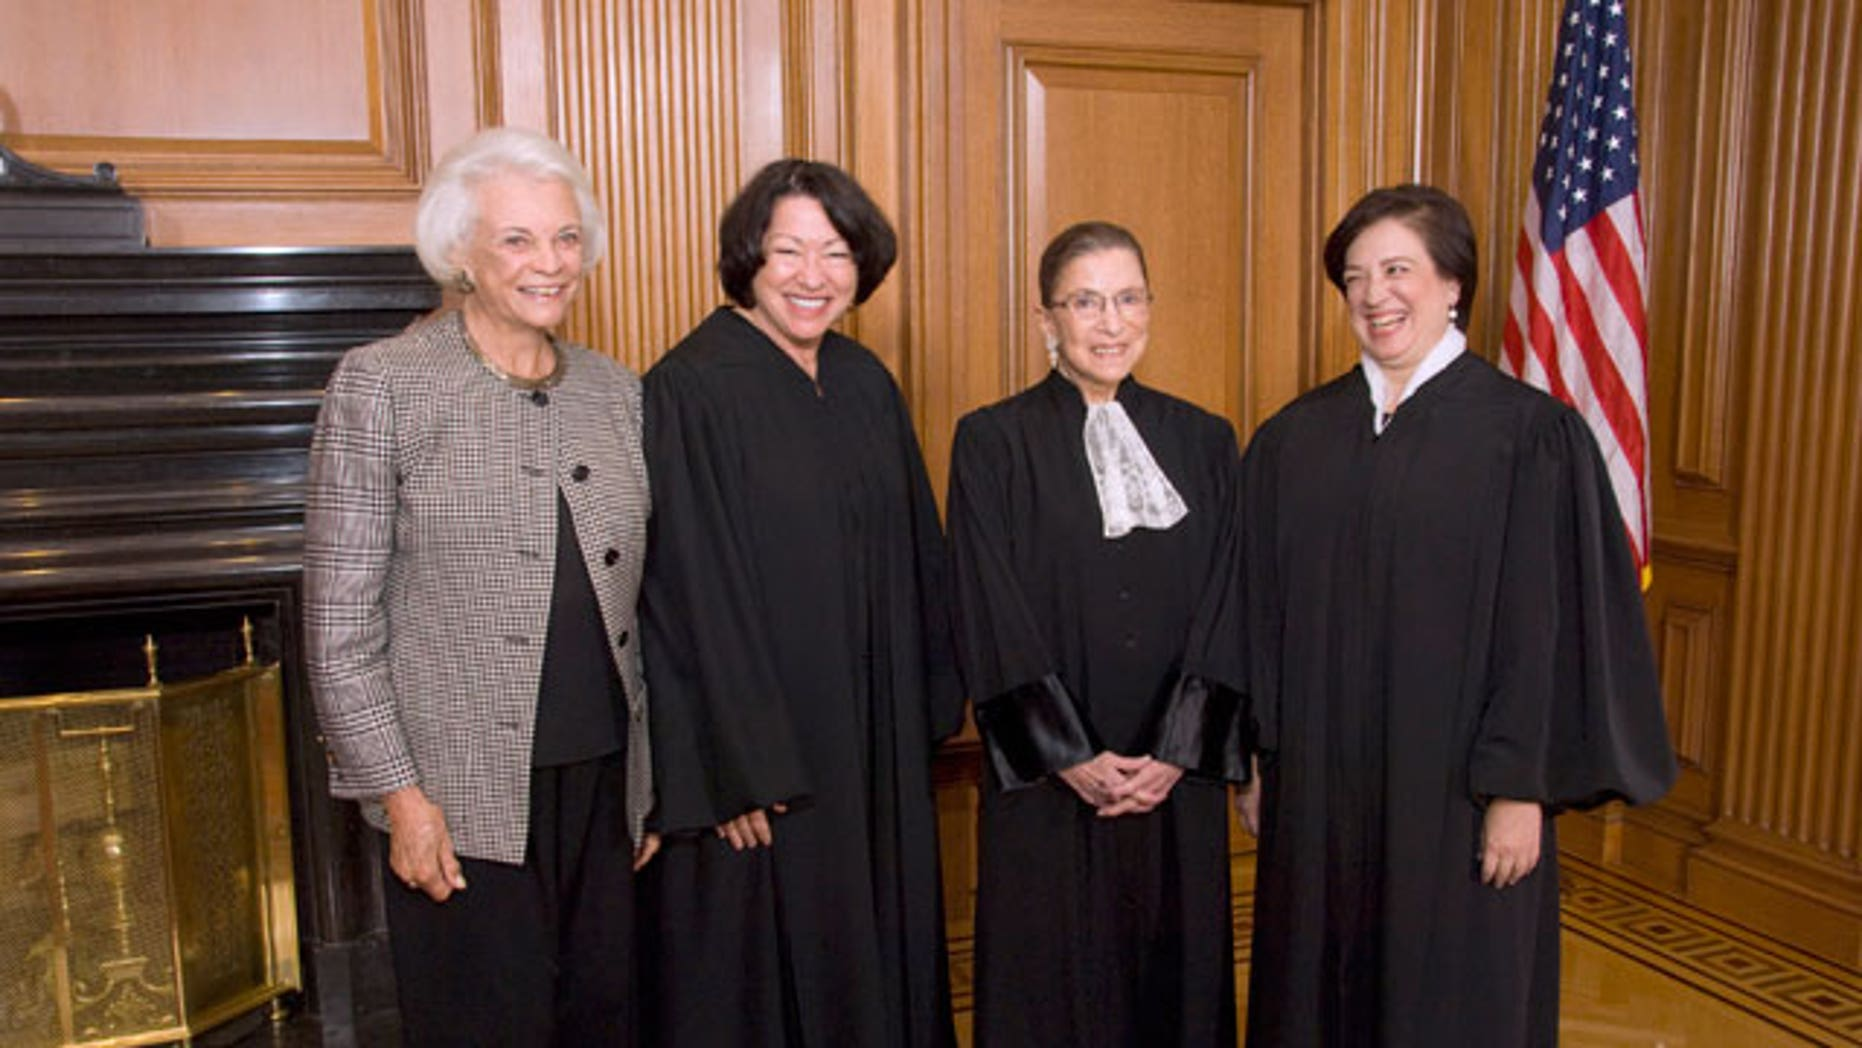 Retired Justice Sandra Day O'Connor, Justice Sonia Sotomayor, Justice Ruth Bader Ginsburg and Justice Elena Kagan in the Justices' Conference Room prior to Justice Kagan's Investiture, Friday, Oct. 1, 2010, at the court in Washington.